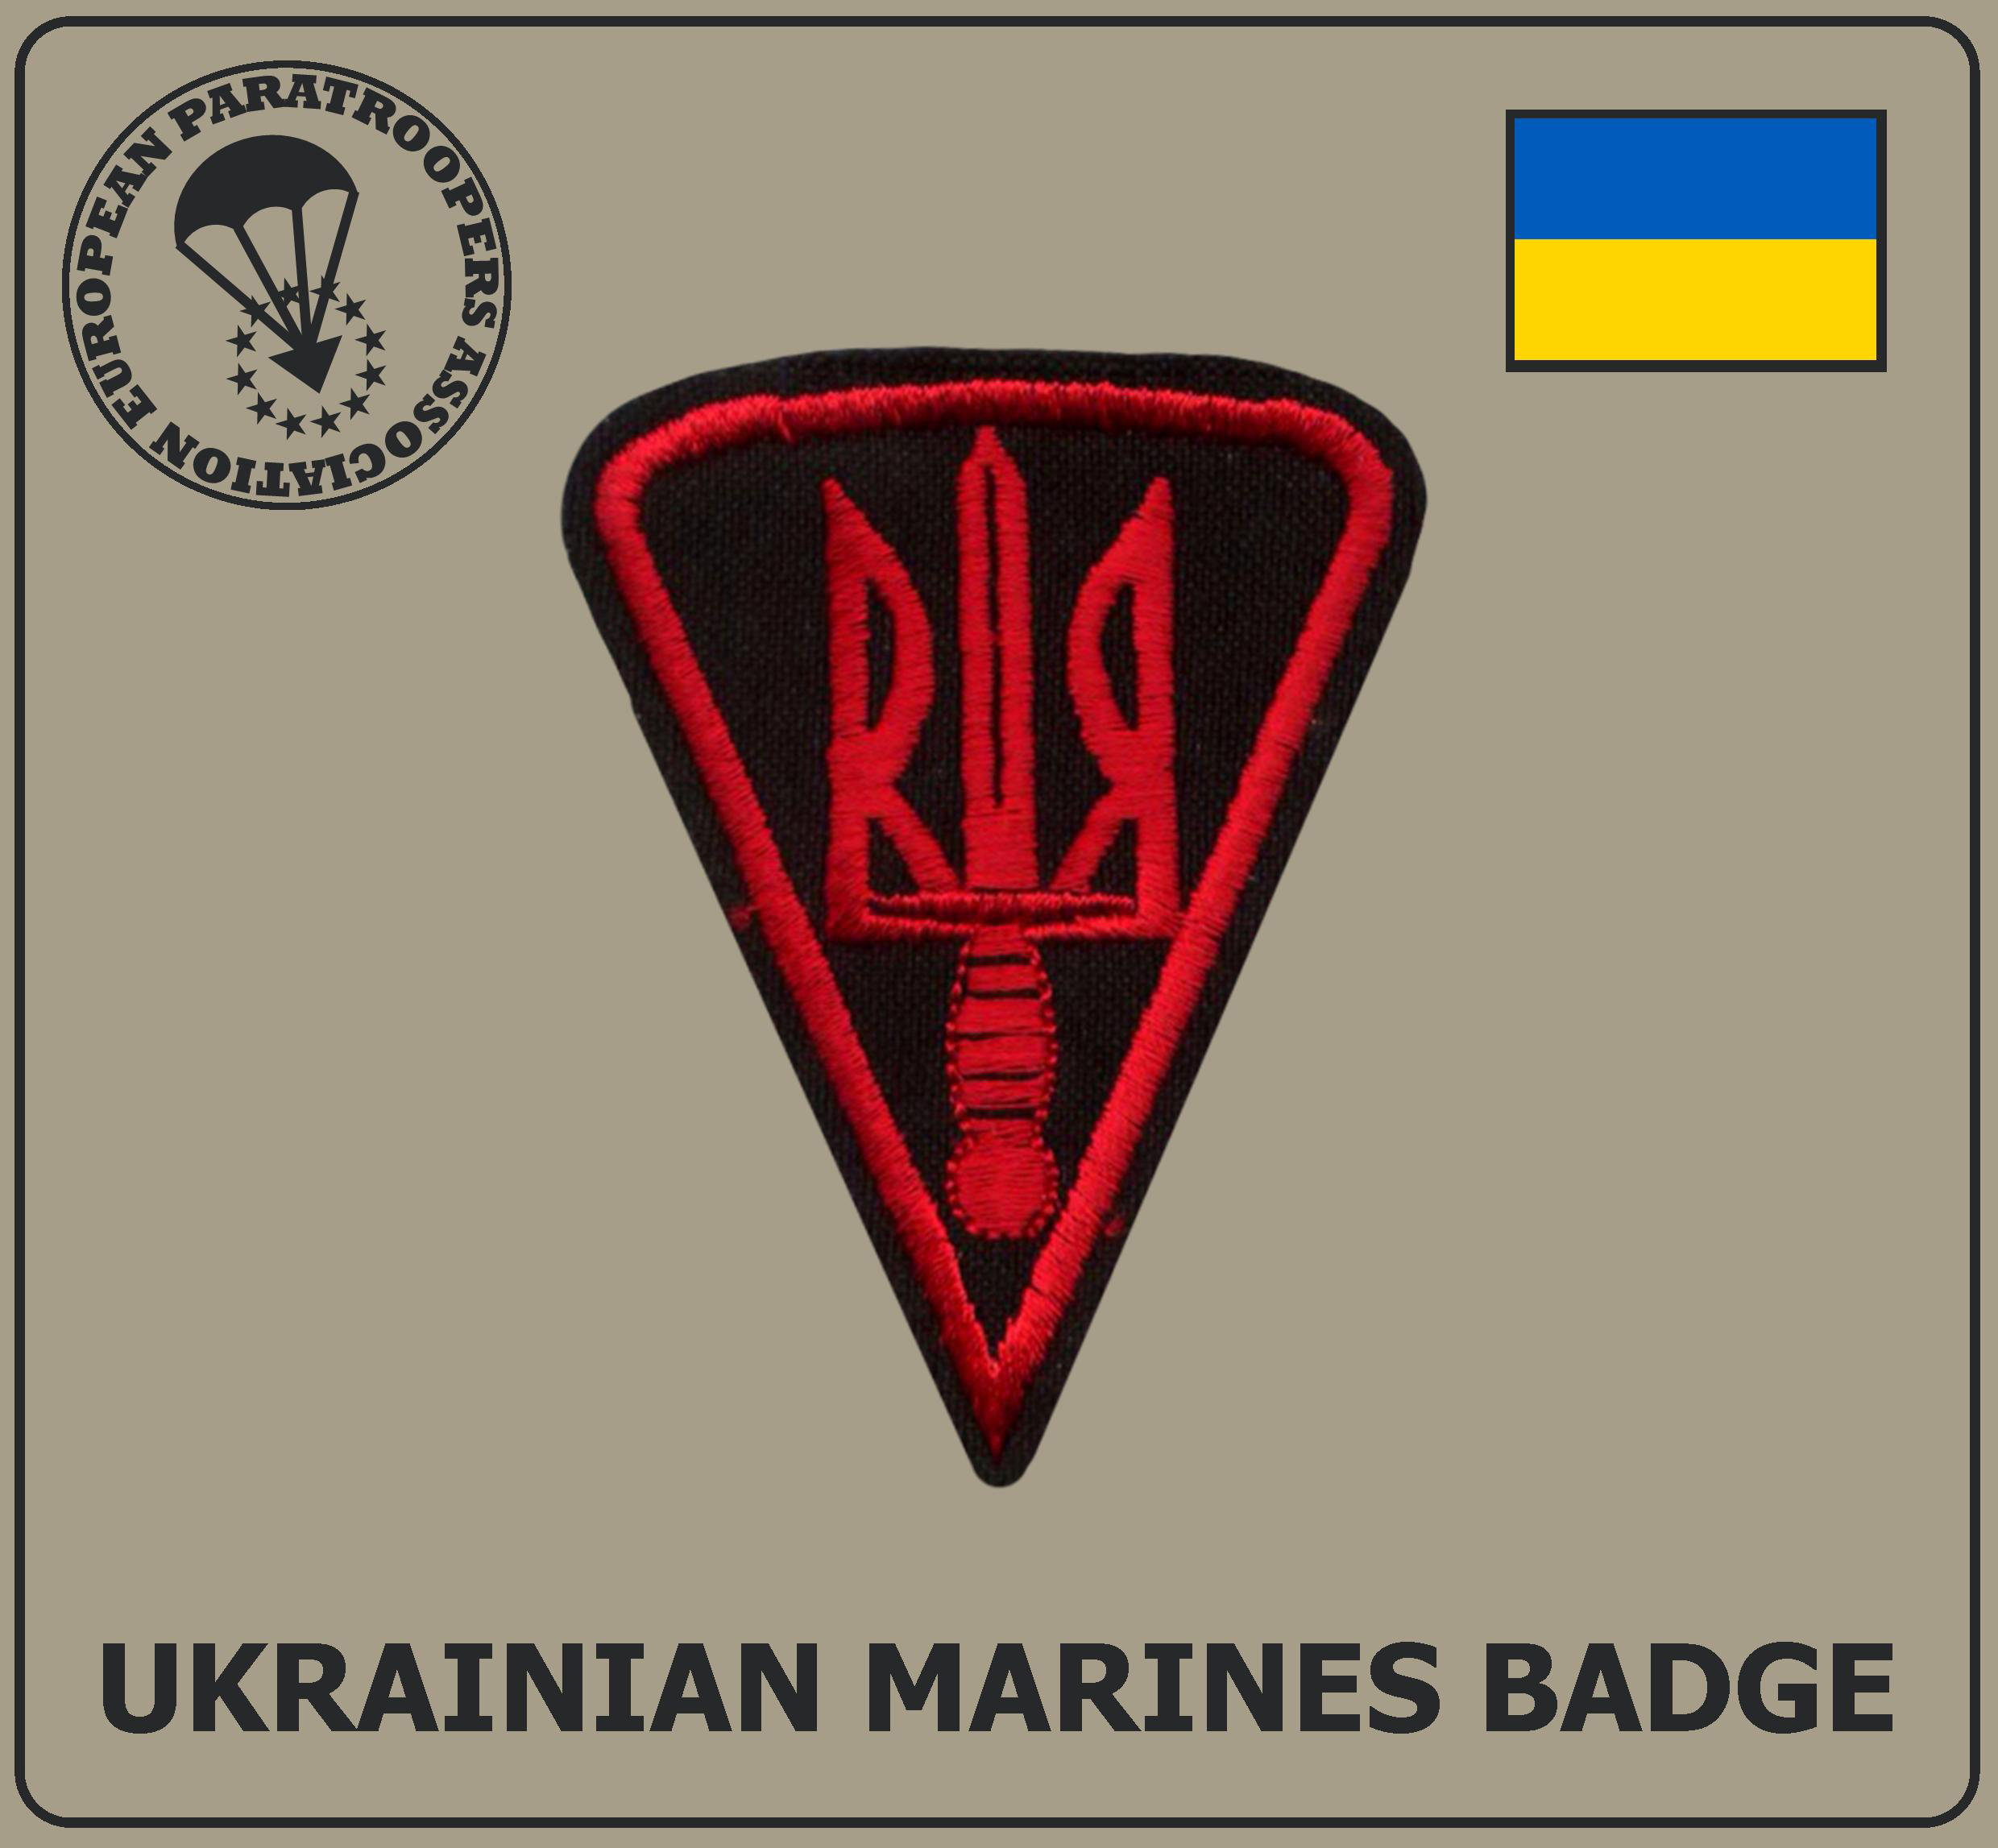 UKRAINIAN MARINES BADGE